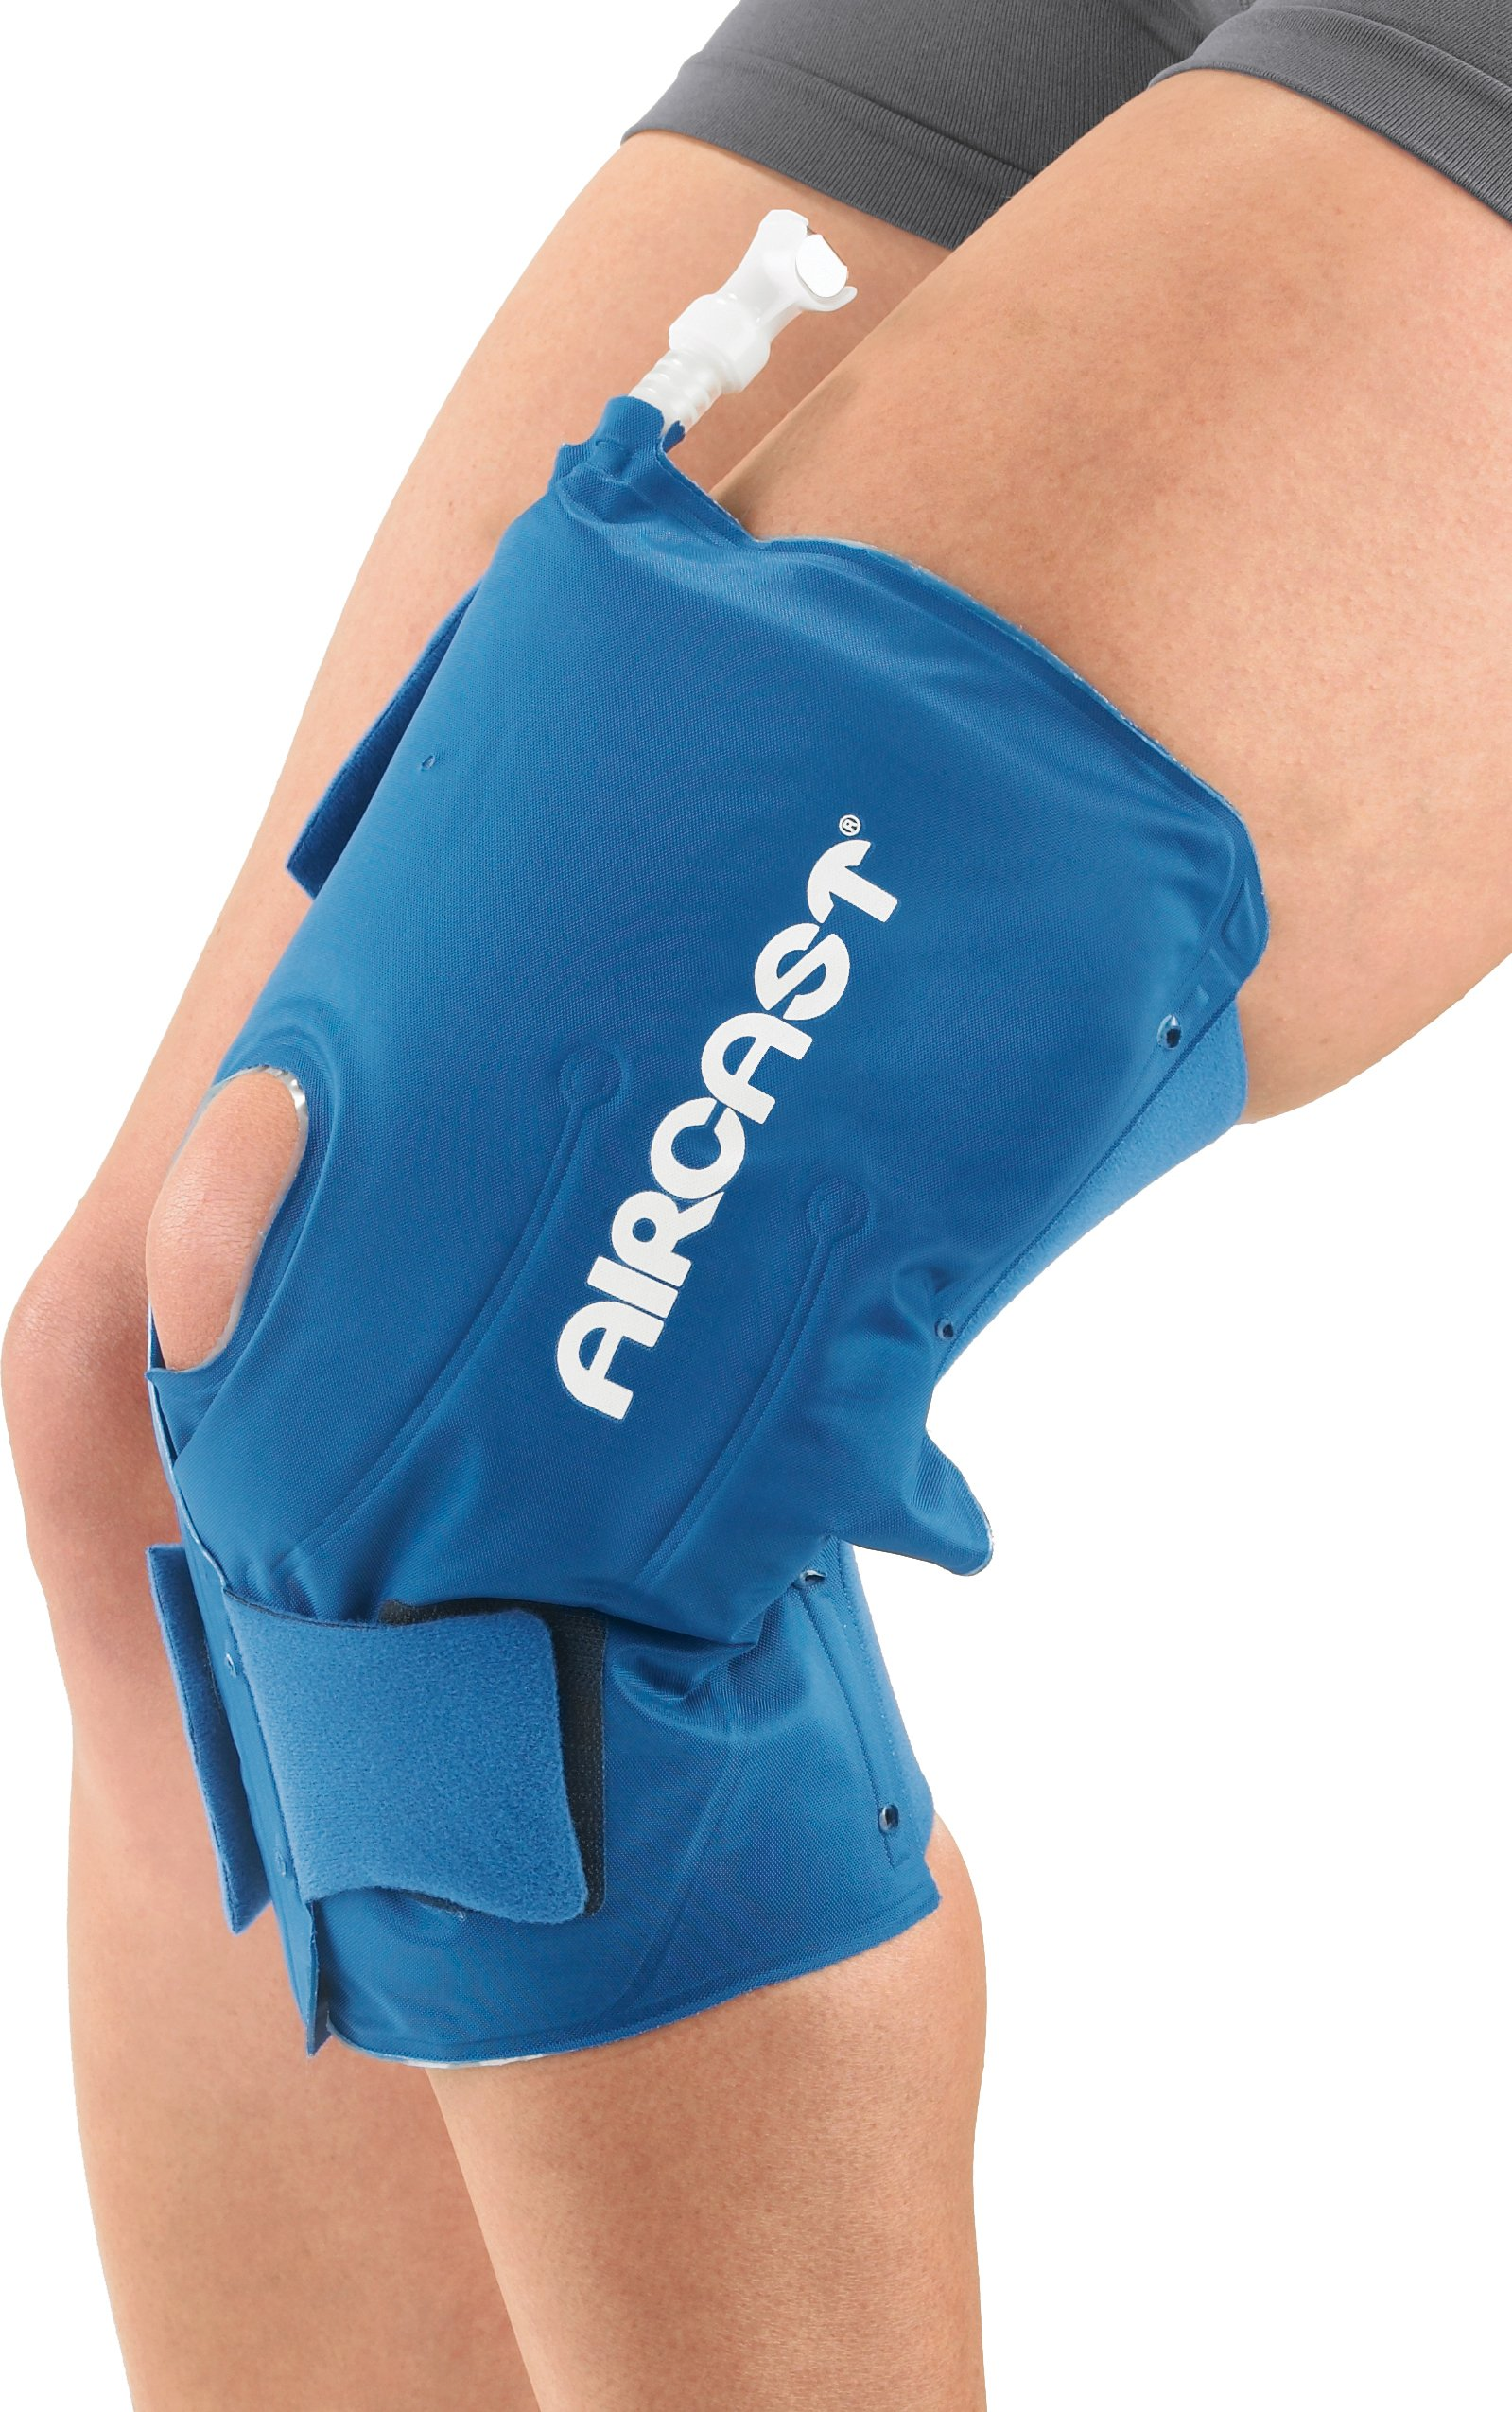 Aircast Cryo/Cuff Cold Therapy: Knee Cryo/Cuff, Large